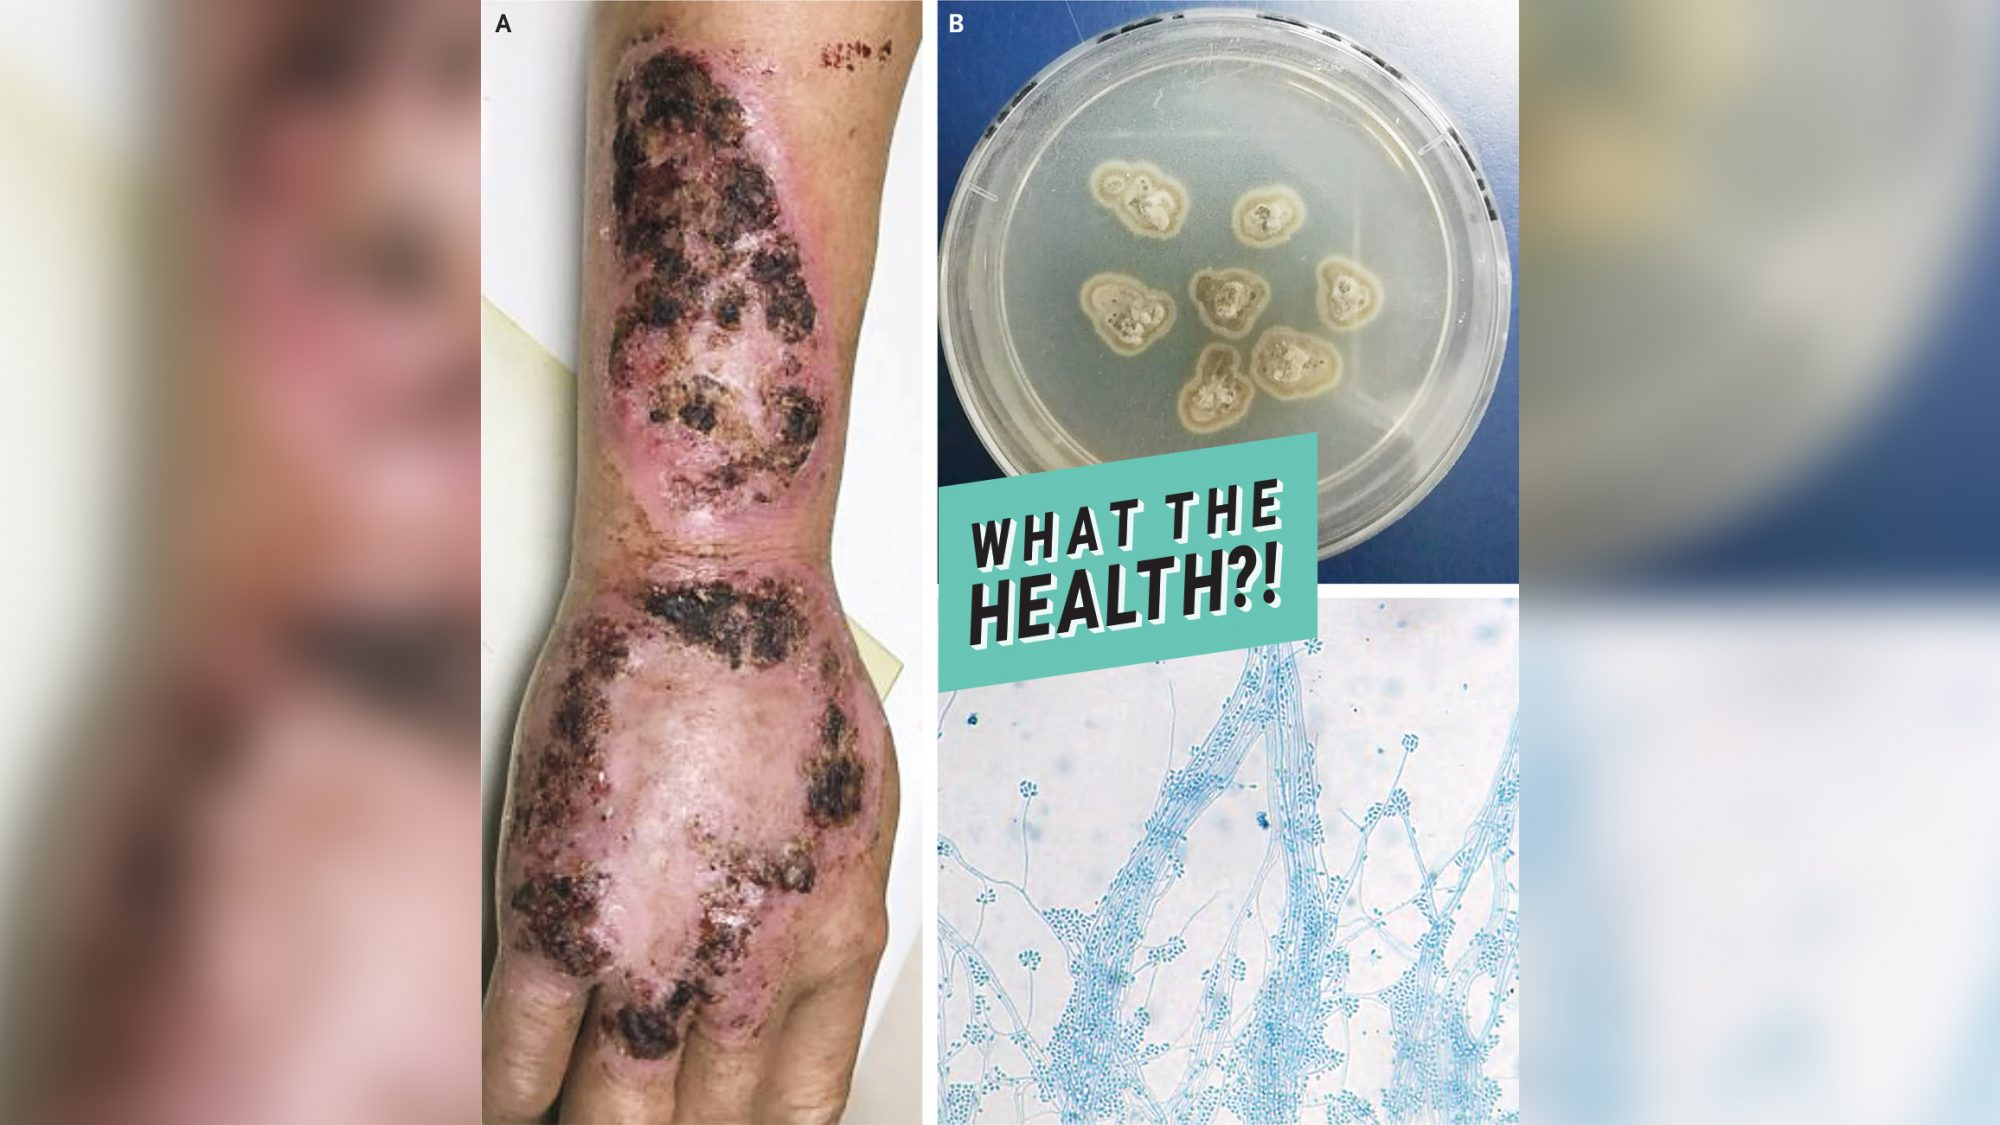 what-the-health infection virus condition skin health wellbeing